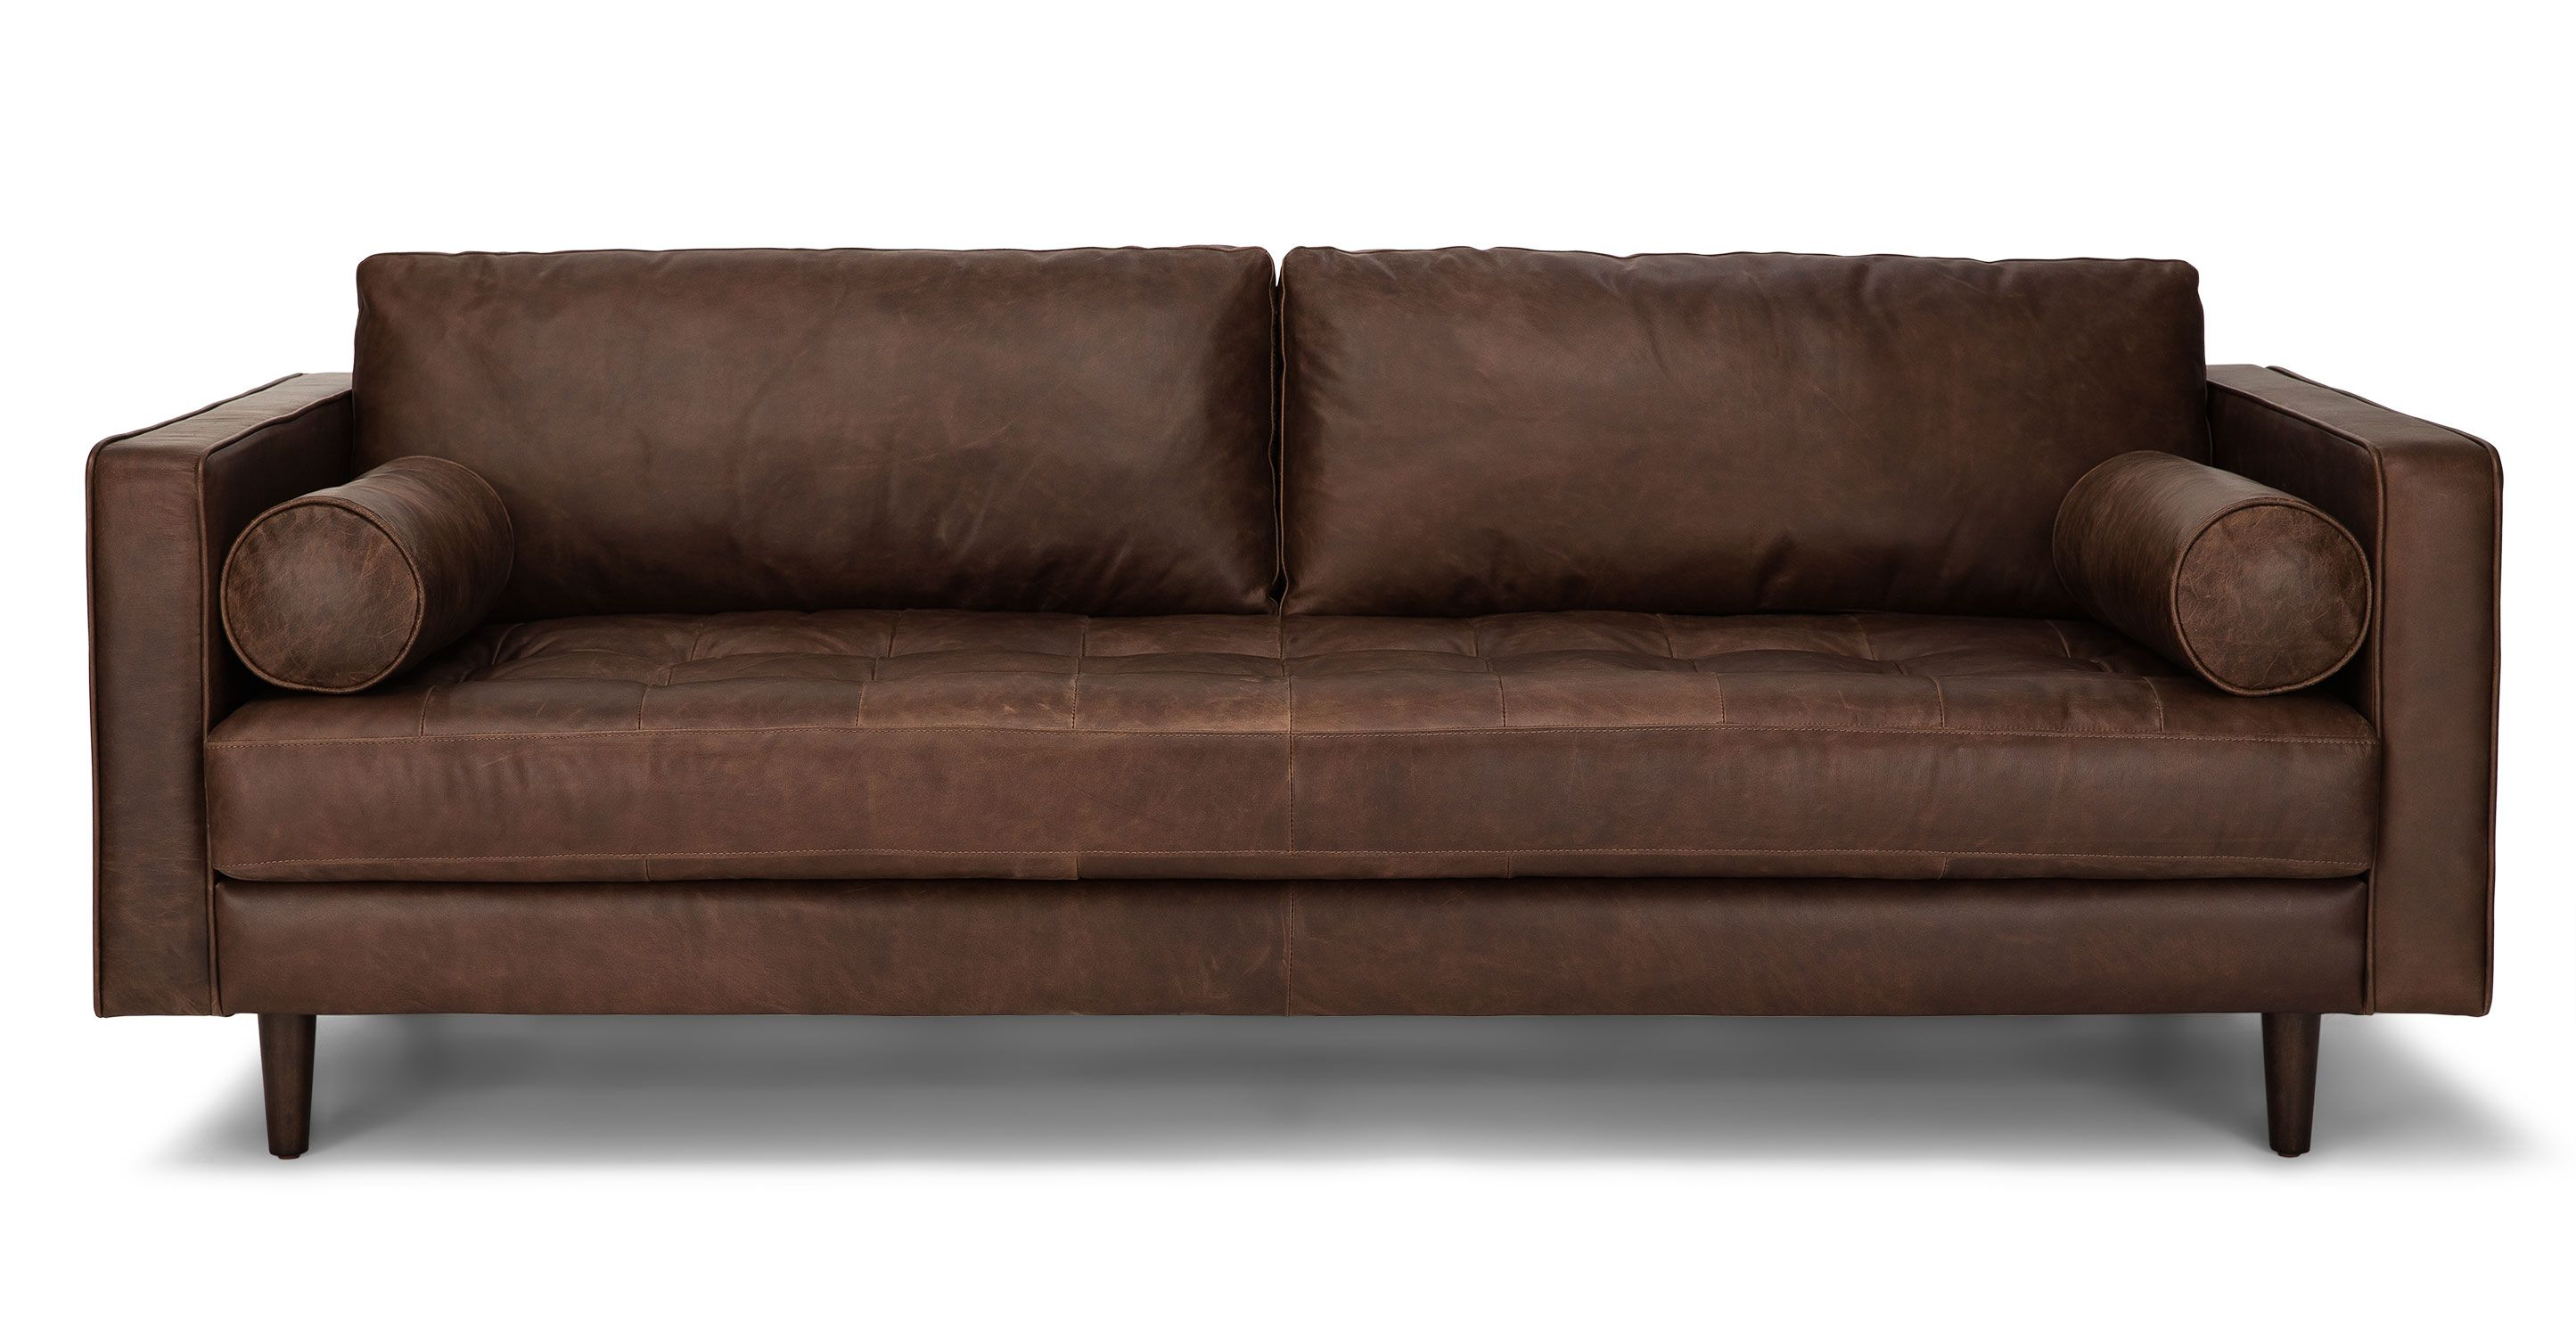 Chocolate brown tufted leather sofa article sven modern - Discount living room furniture near me ...